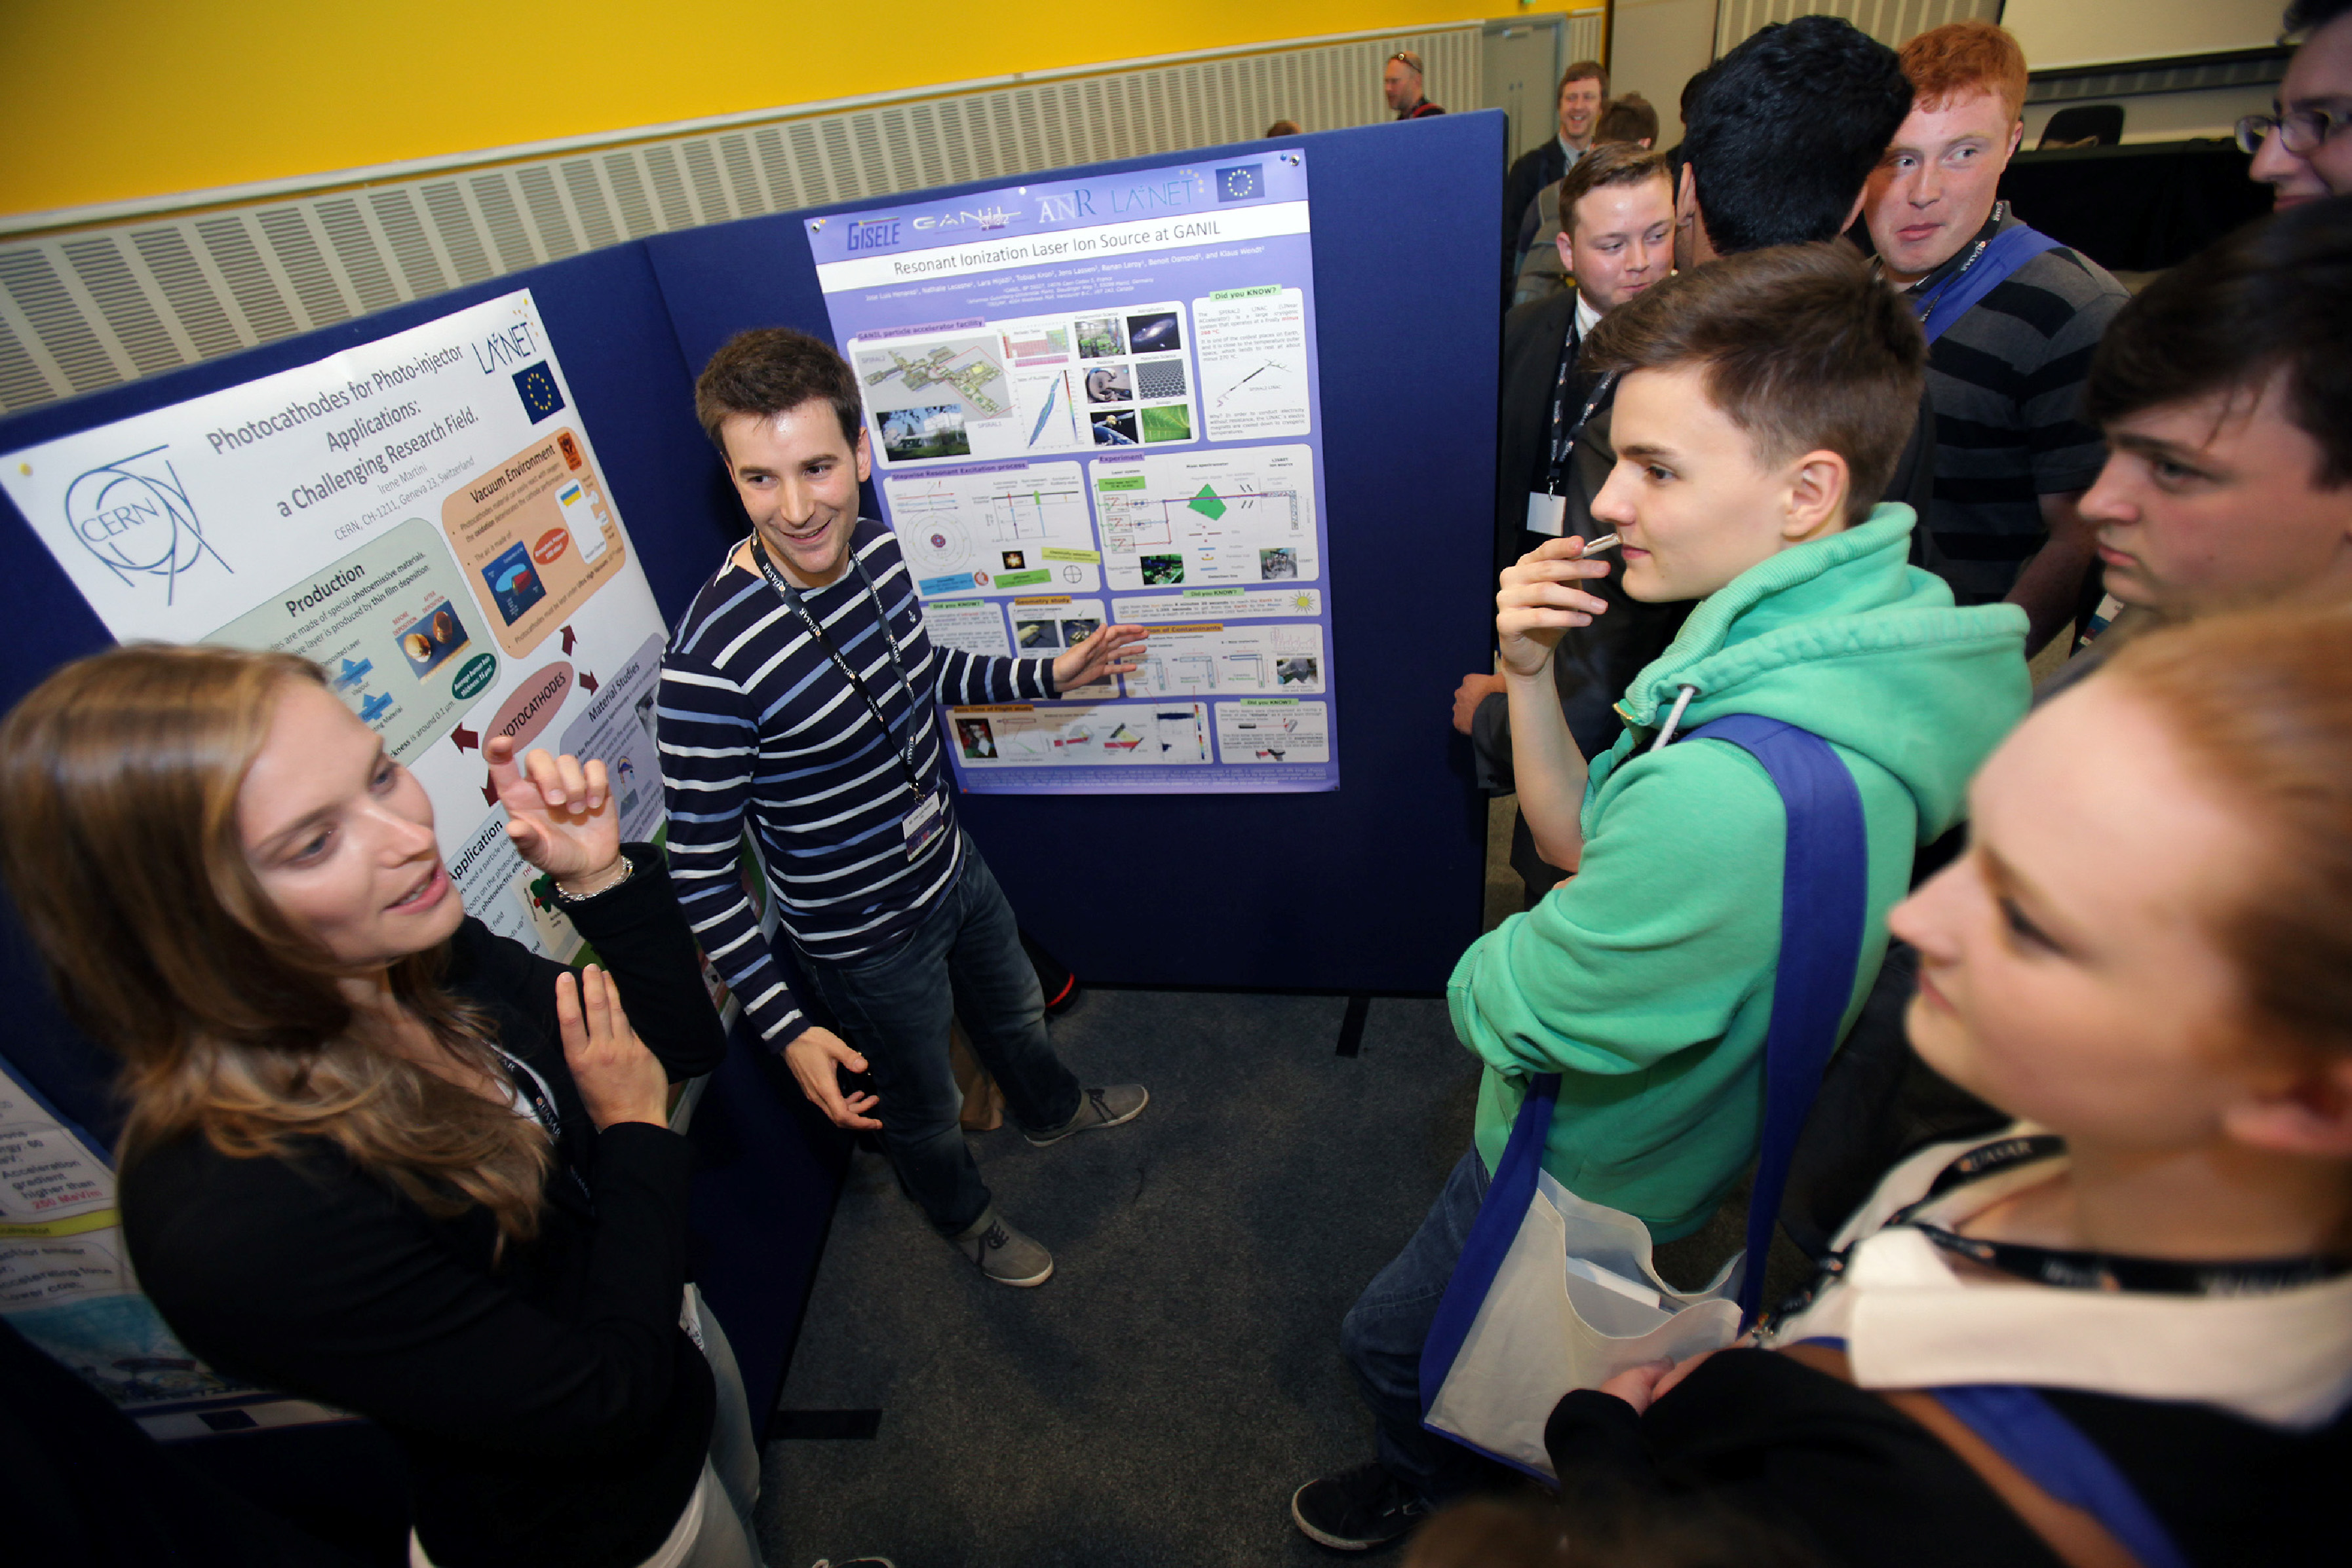 Fellows and students during poster session.